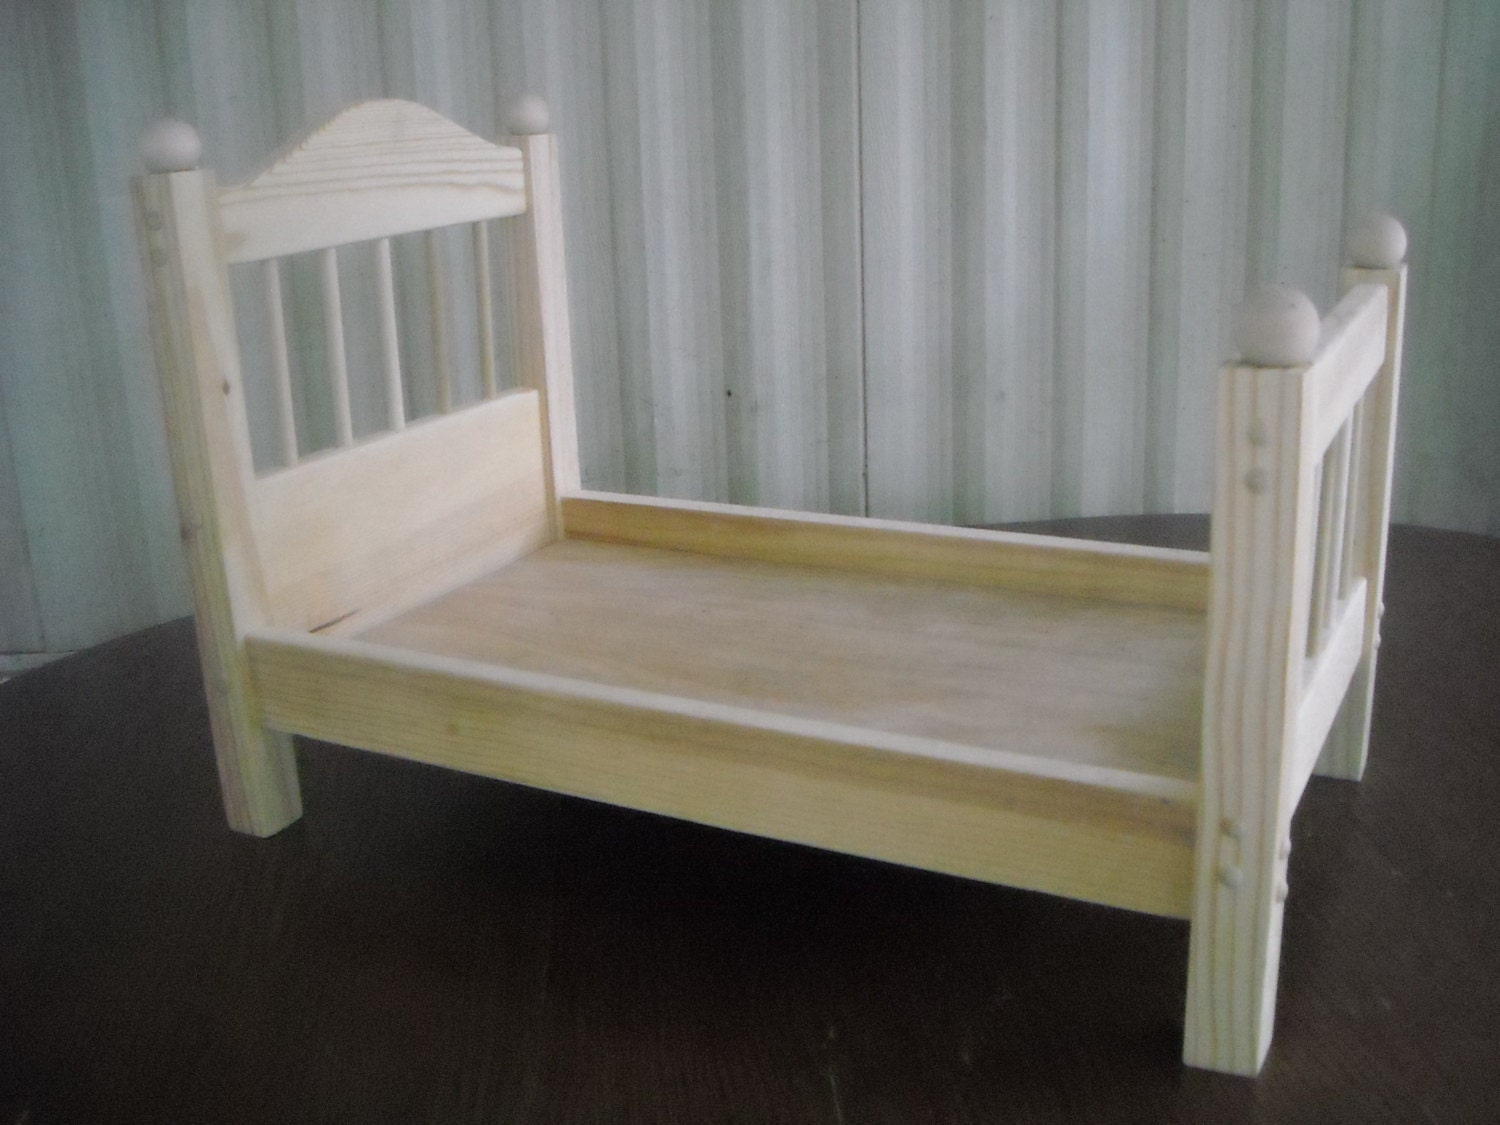 Doll Bunk Plans: Beds